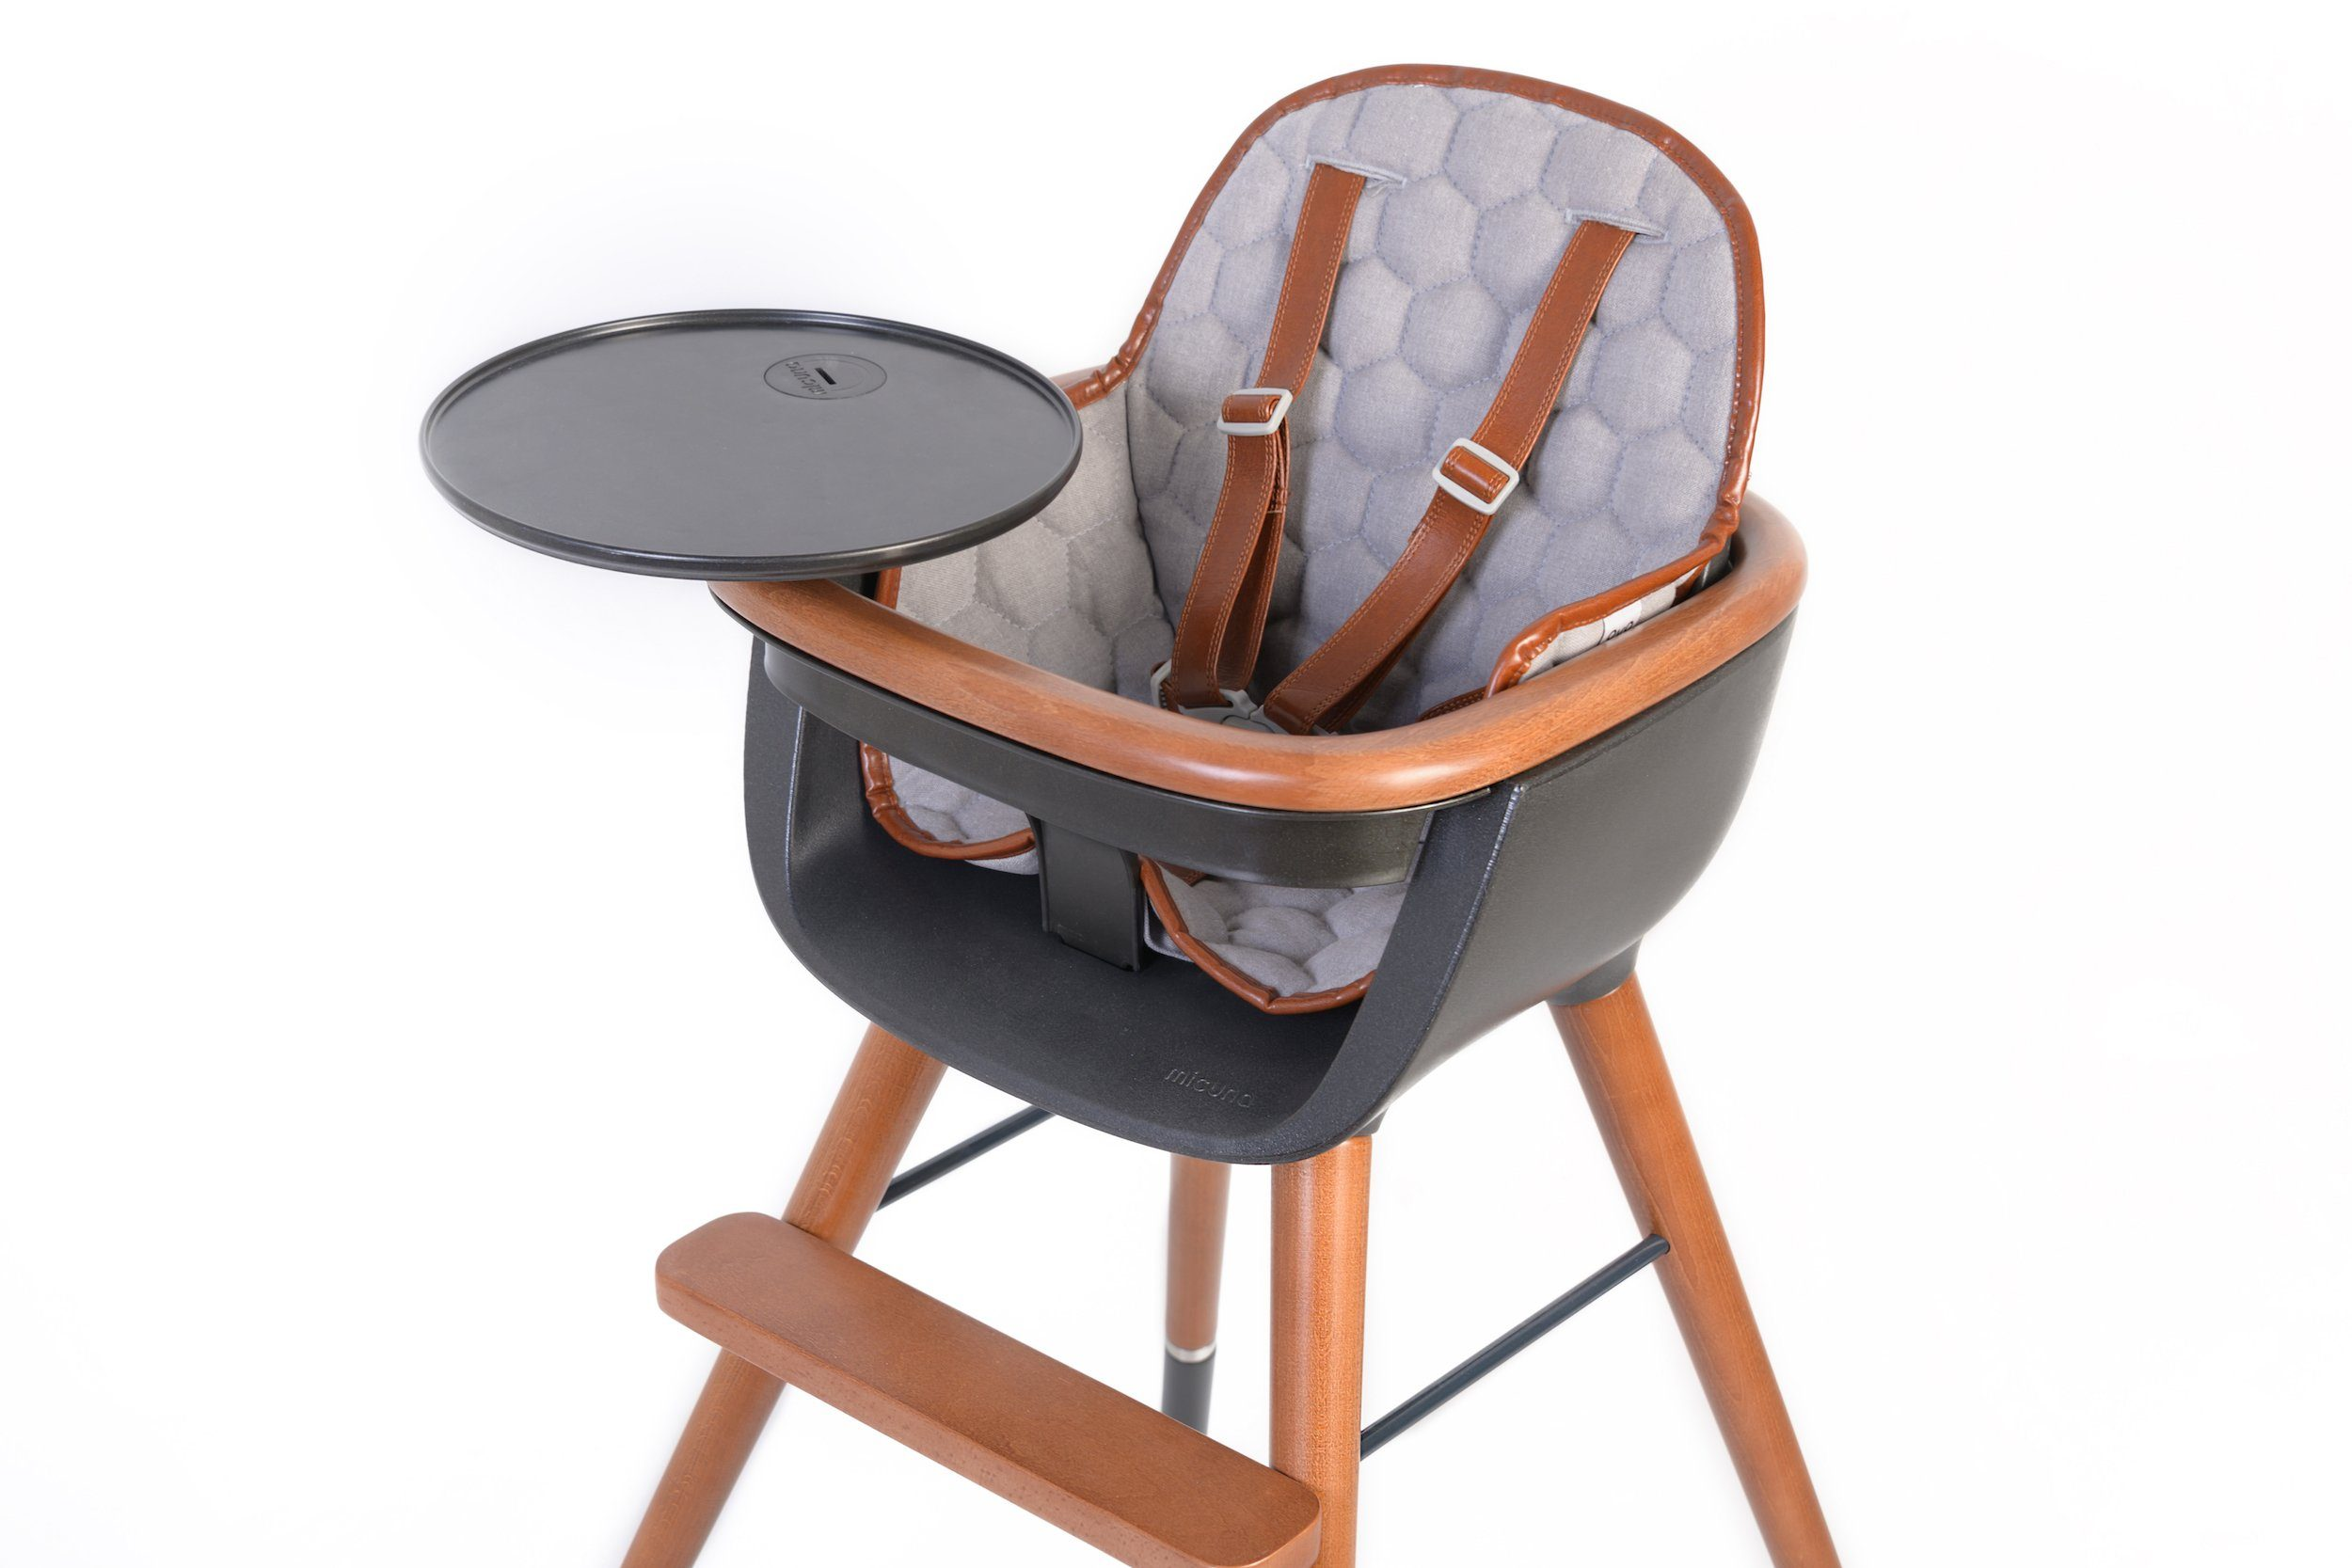 Ovo City Highchair with Seatpad - Project Nursery